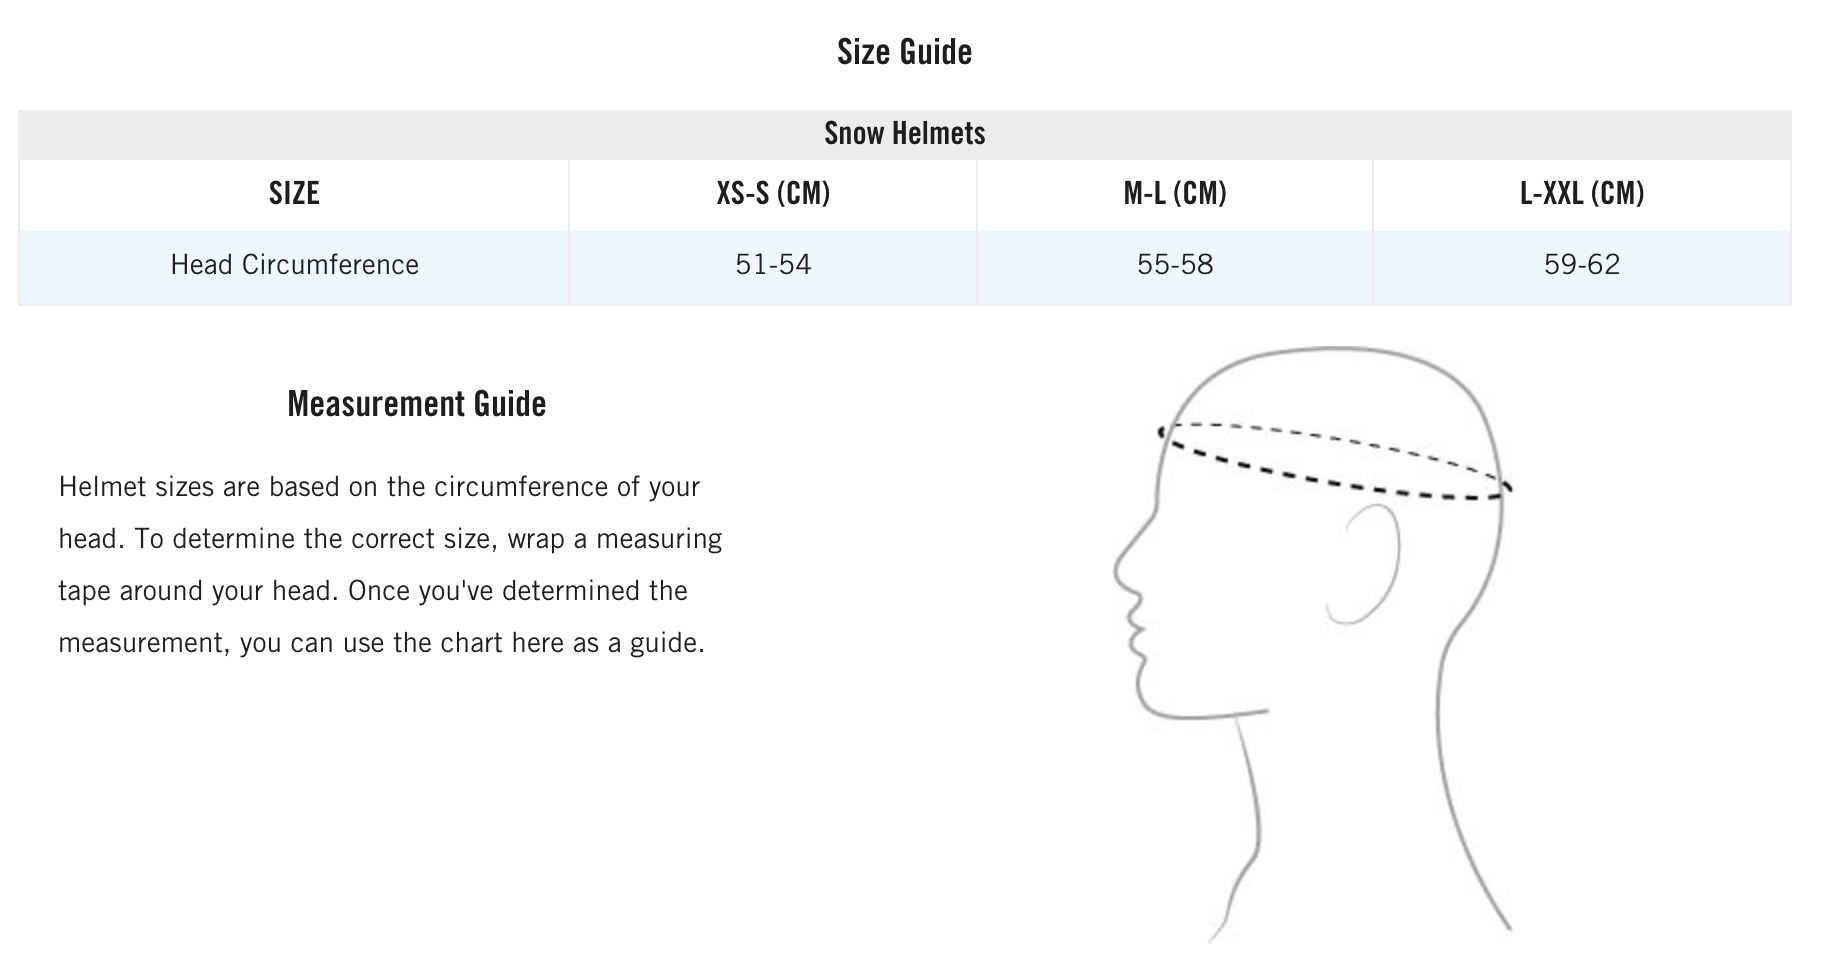 POC Helmets Sizing Guide